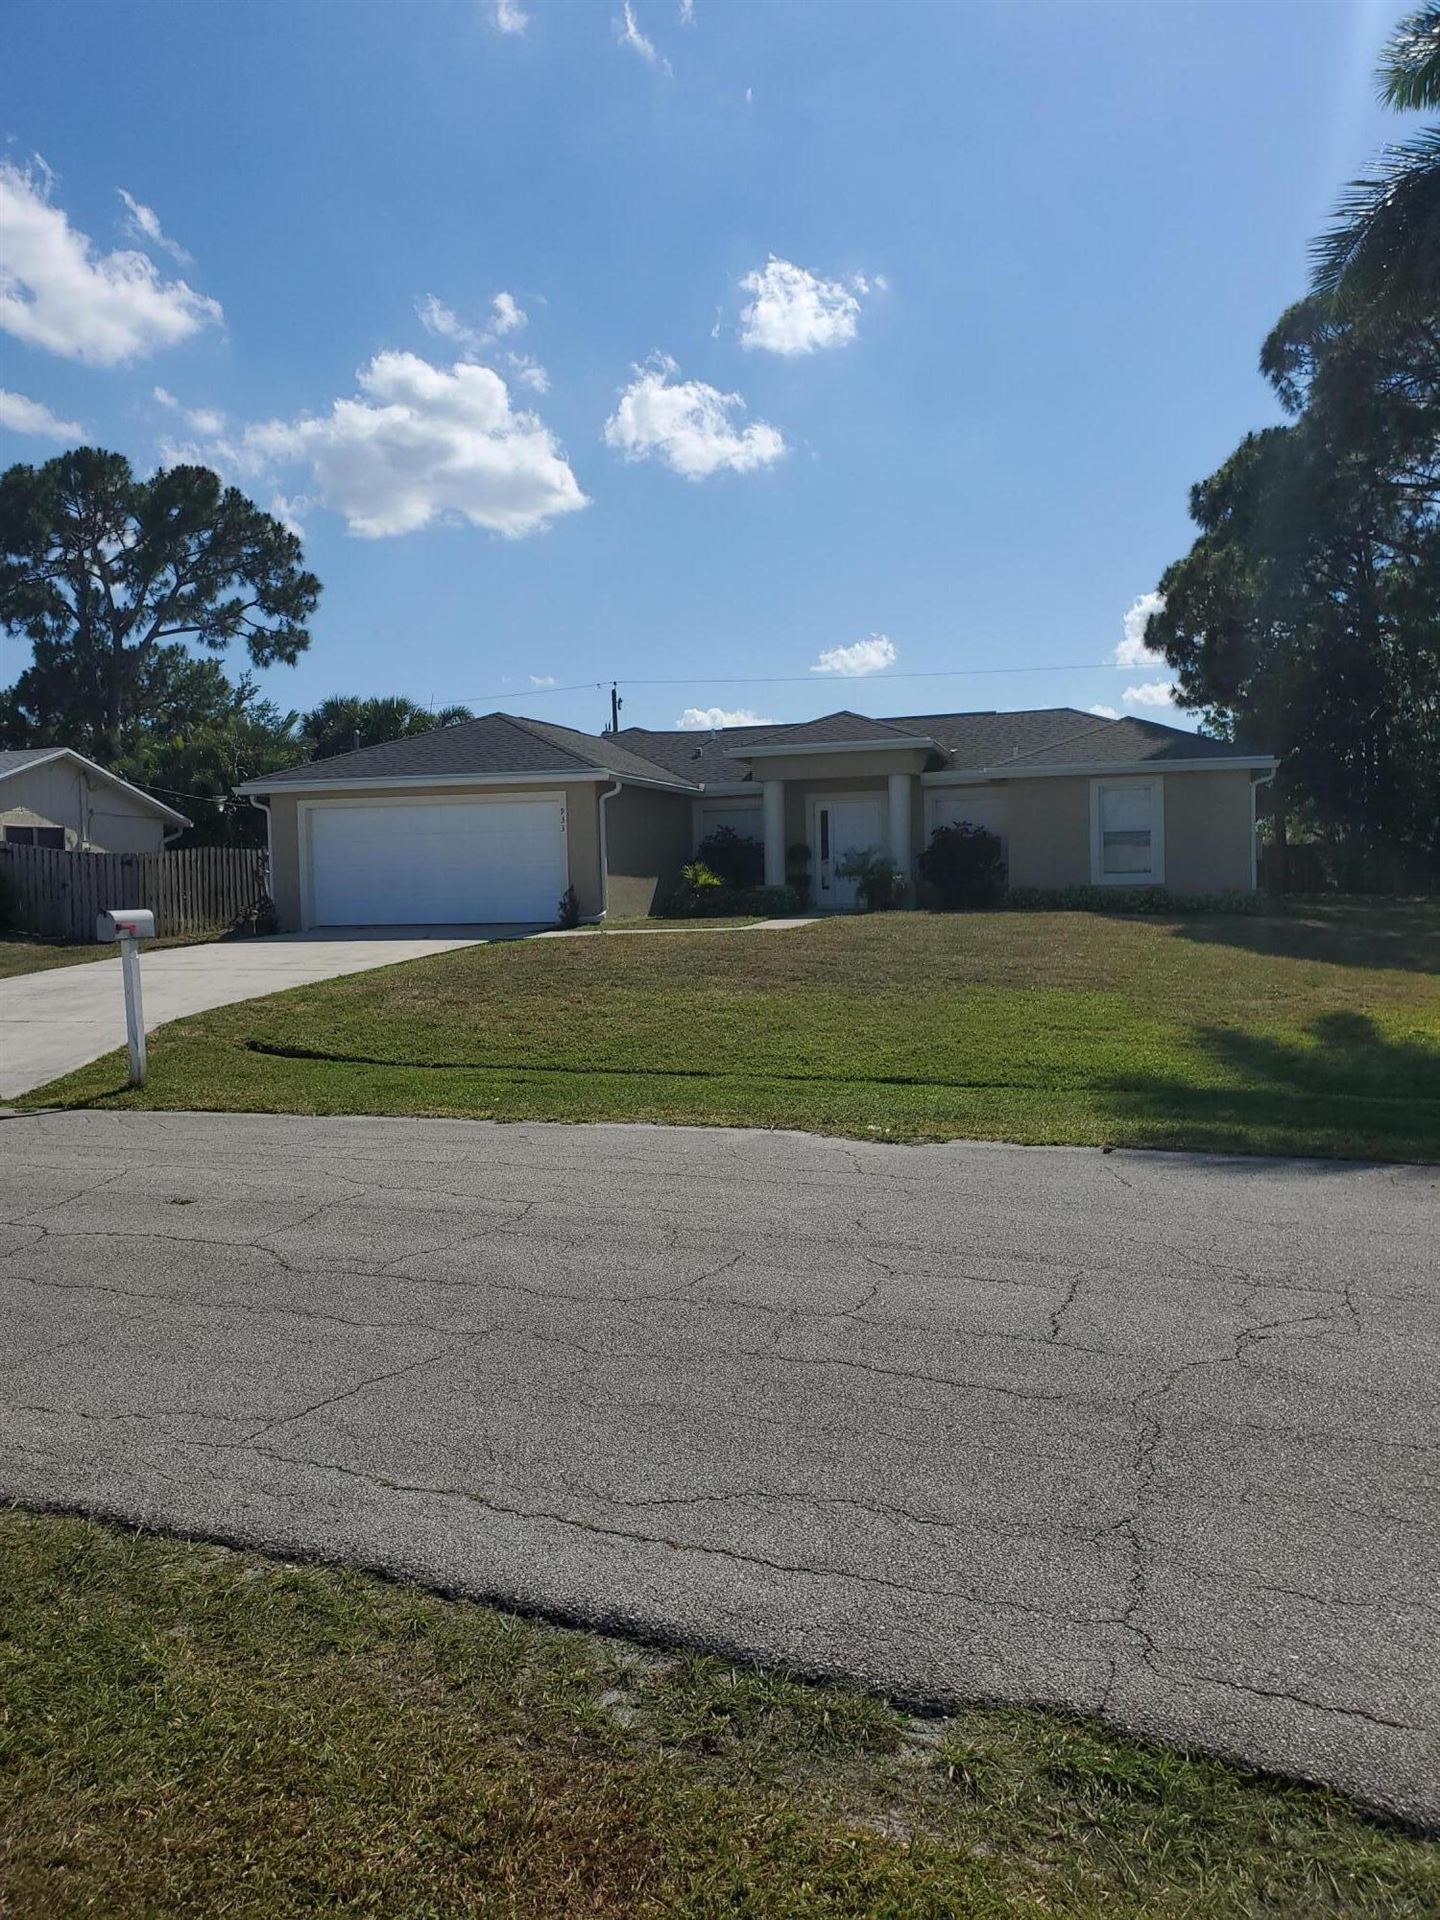 933 SW Mccall Road, Port Saint Lucie, FL 34953 - #: RX-10714707